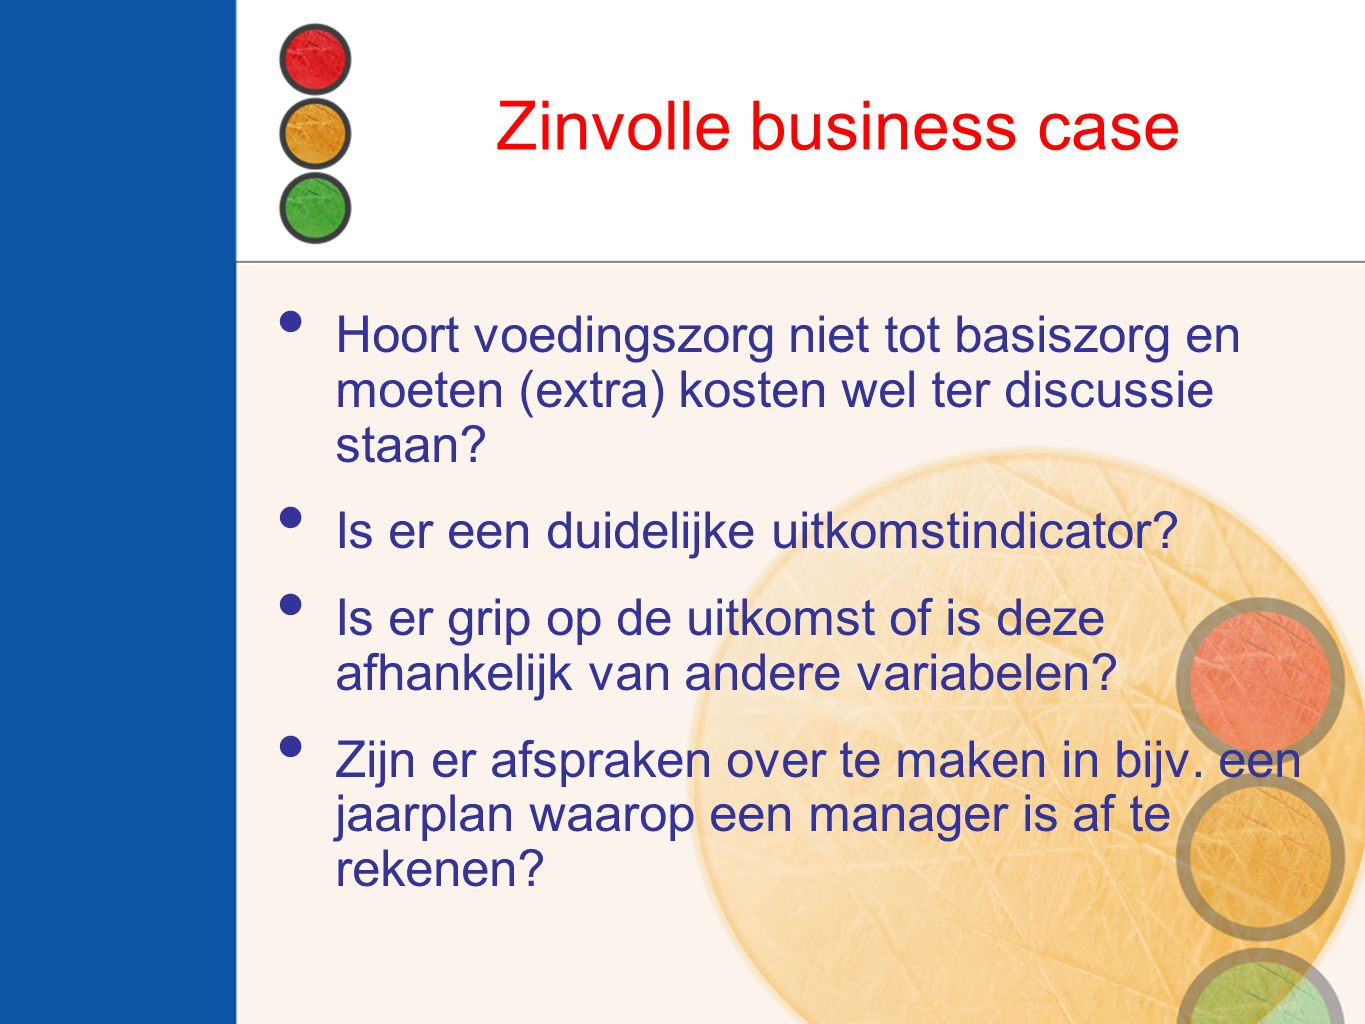 Zinvolle business case